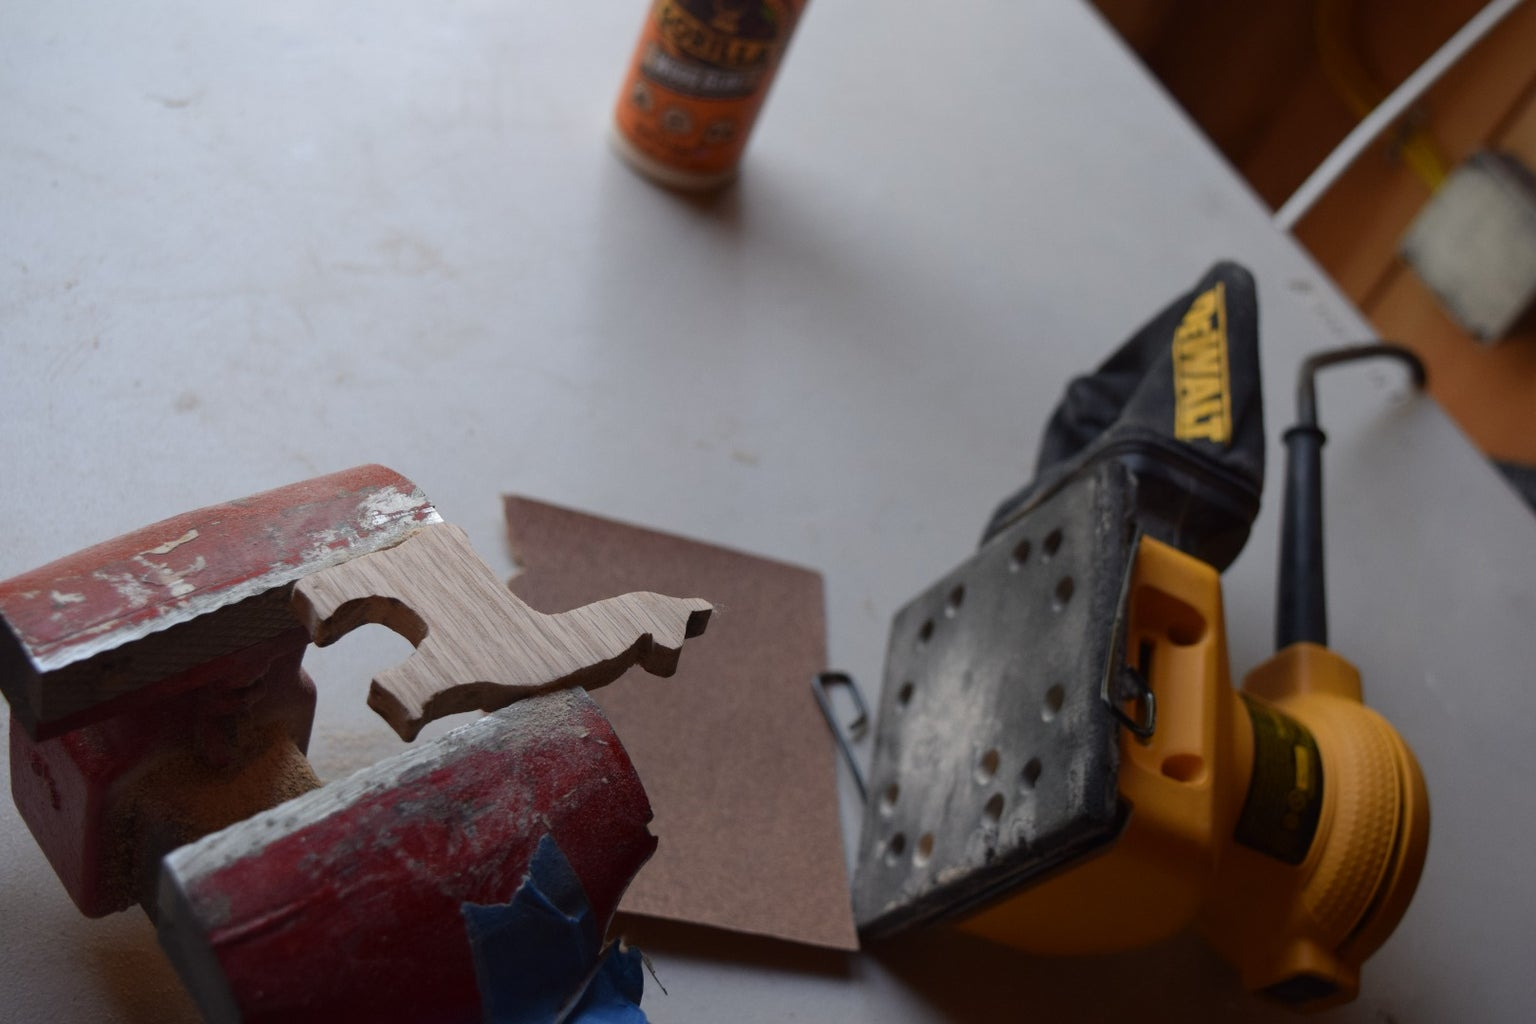 Refining and Sanding